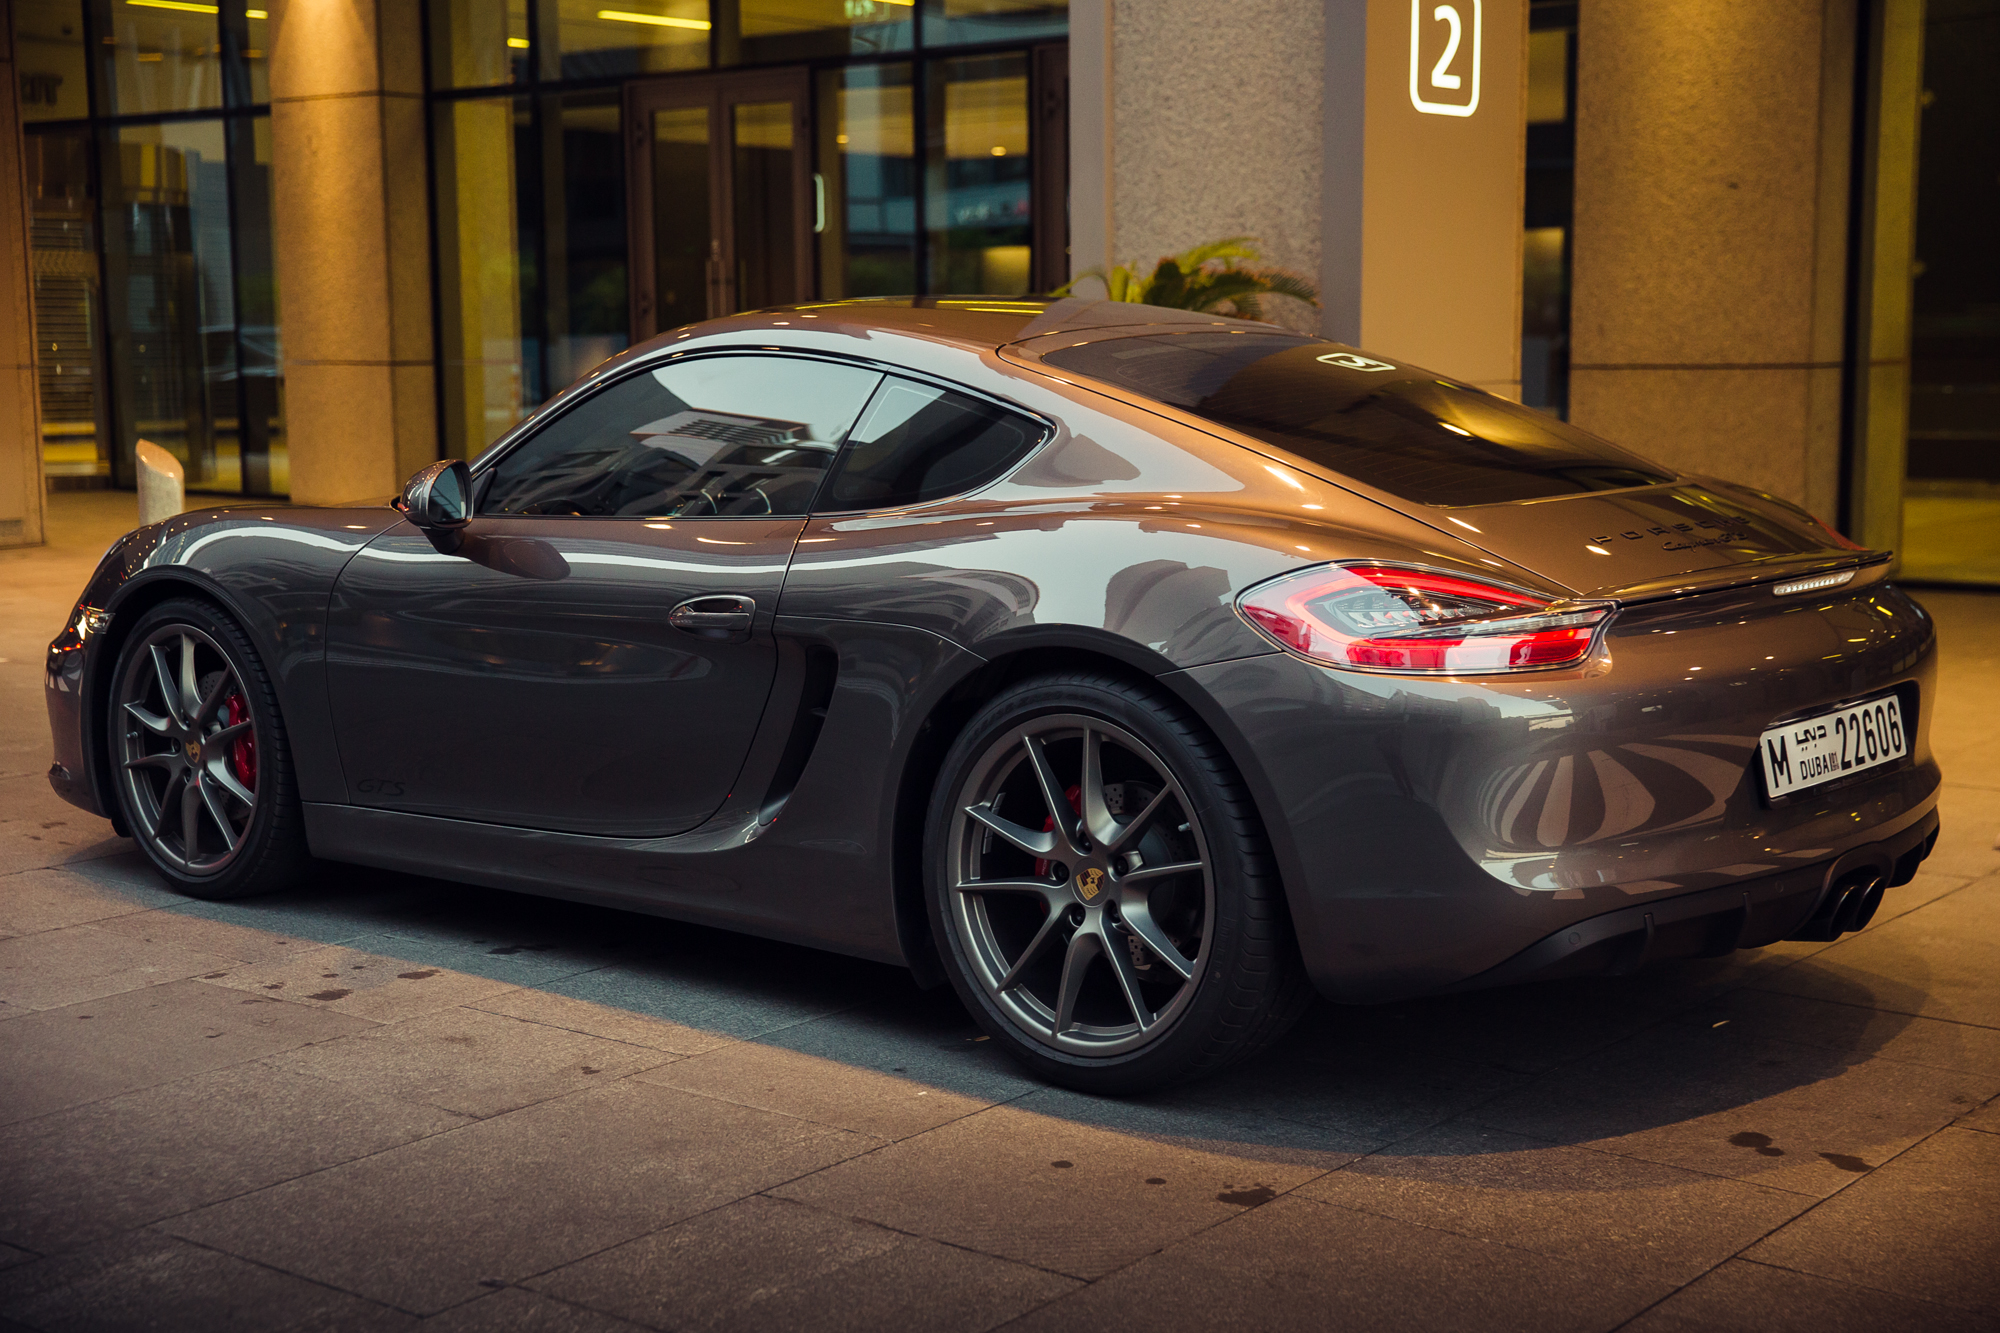 just received my 2015 agate grey cayman gts in dubai